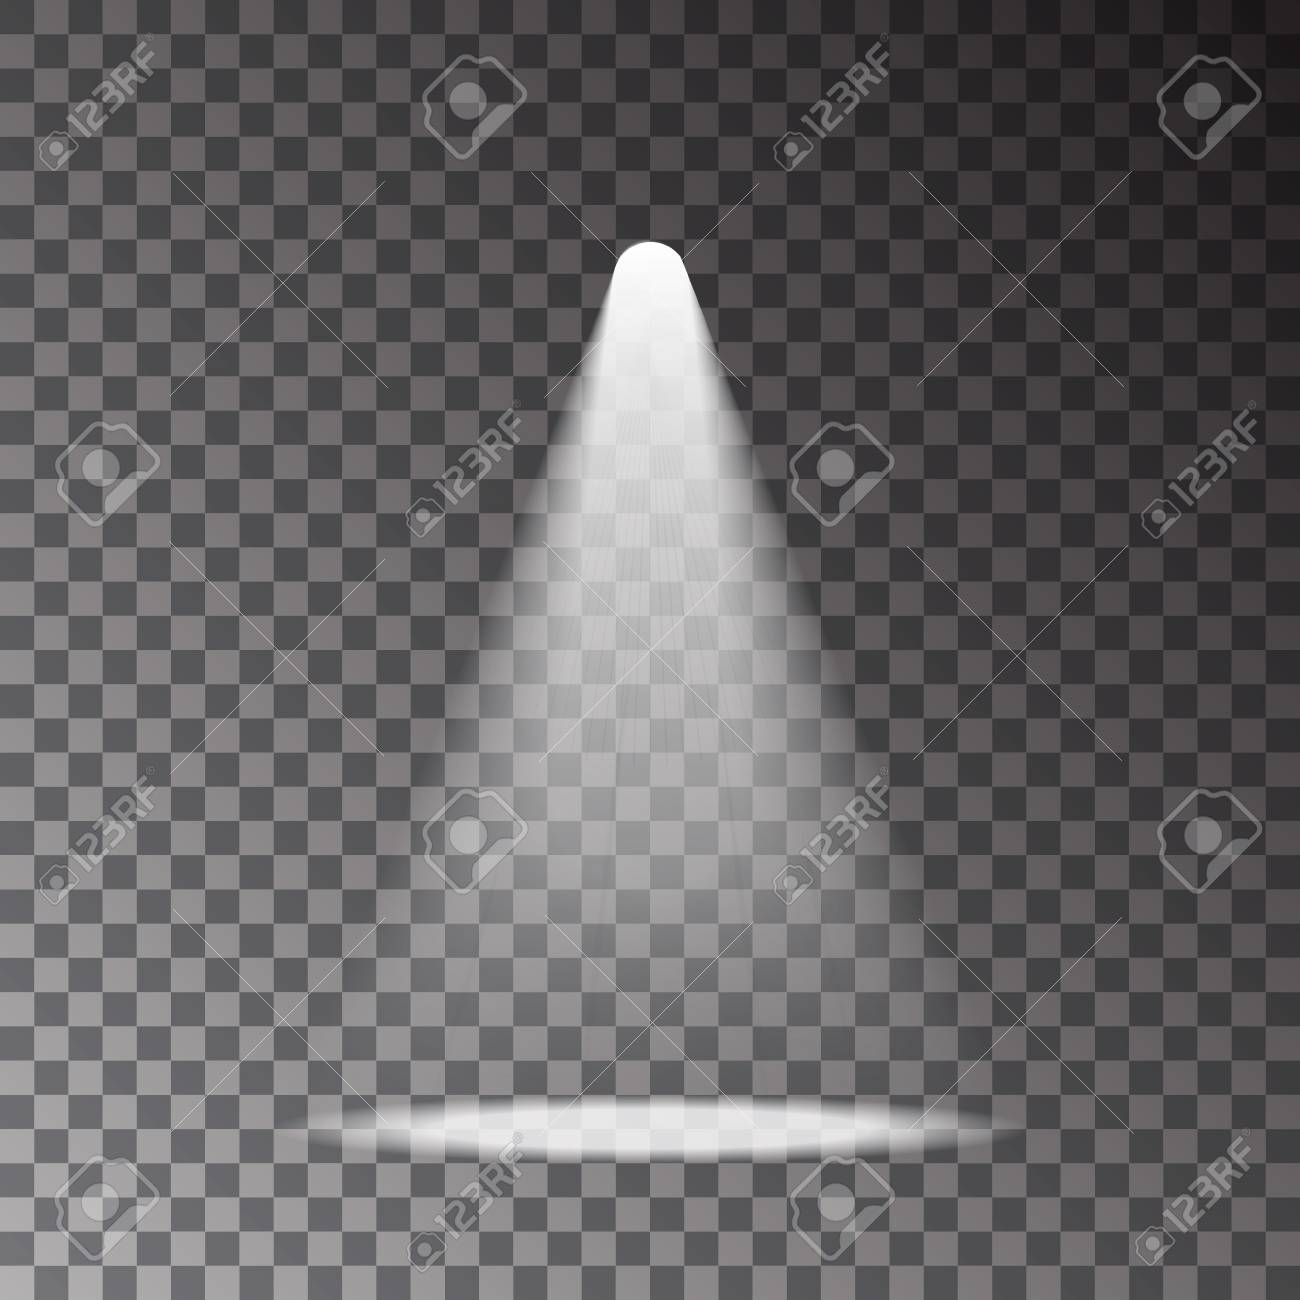 Light Rays Transparent - Scene With Light Ray Isolated On Transparent Background. Spotlight ...